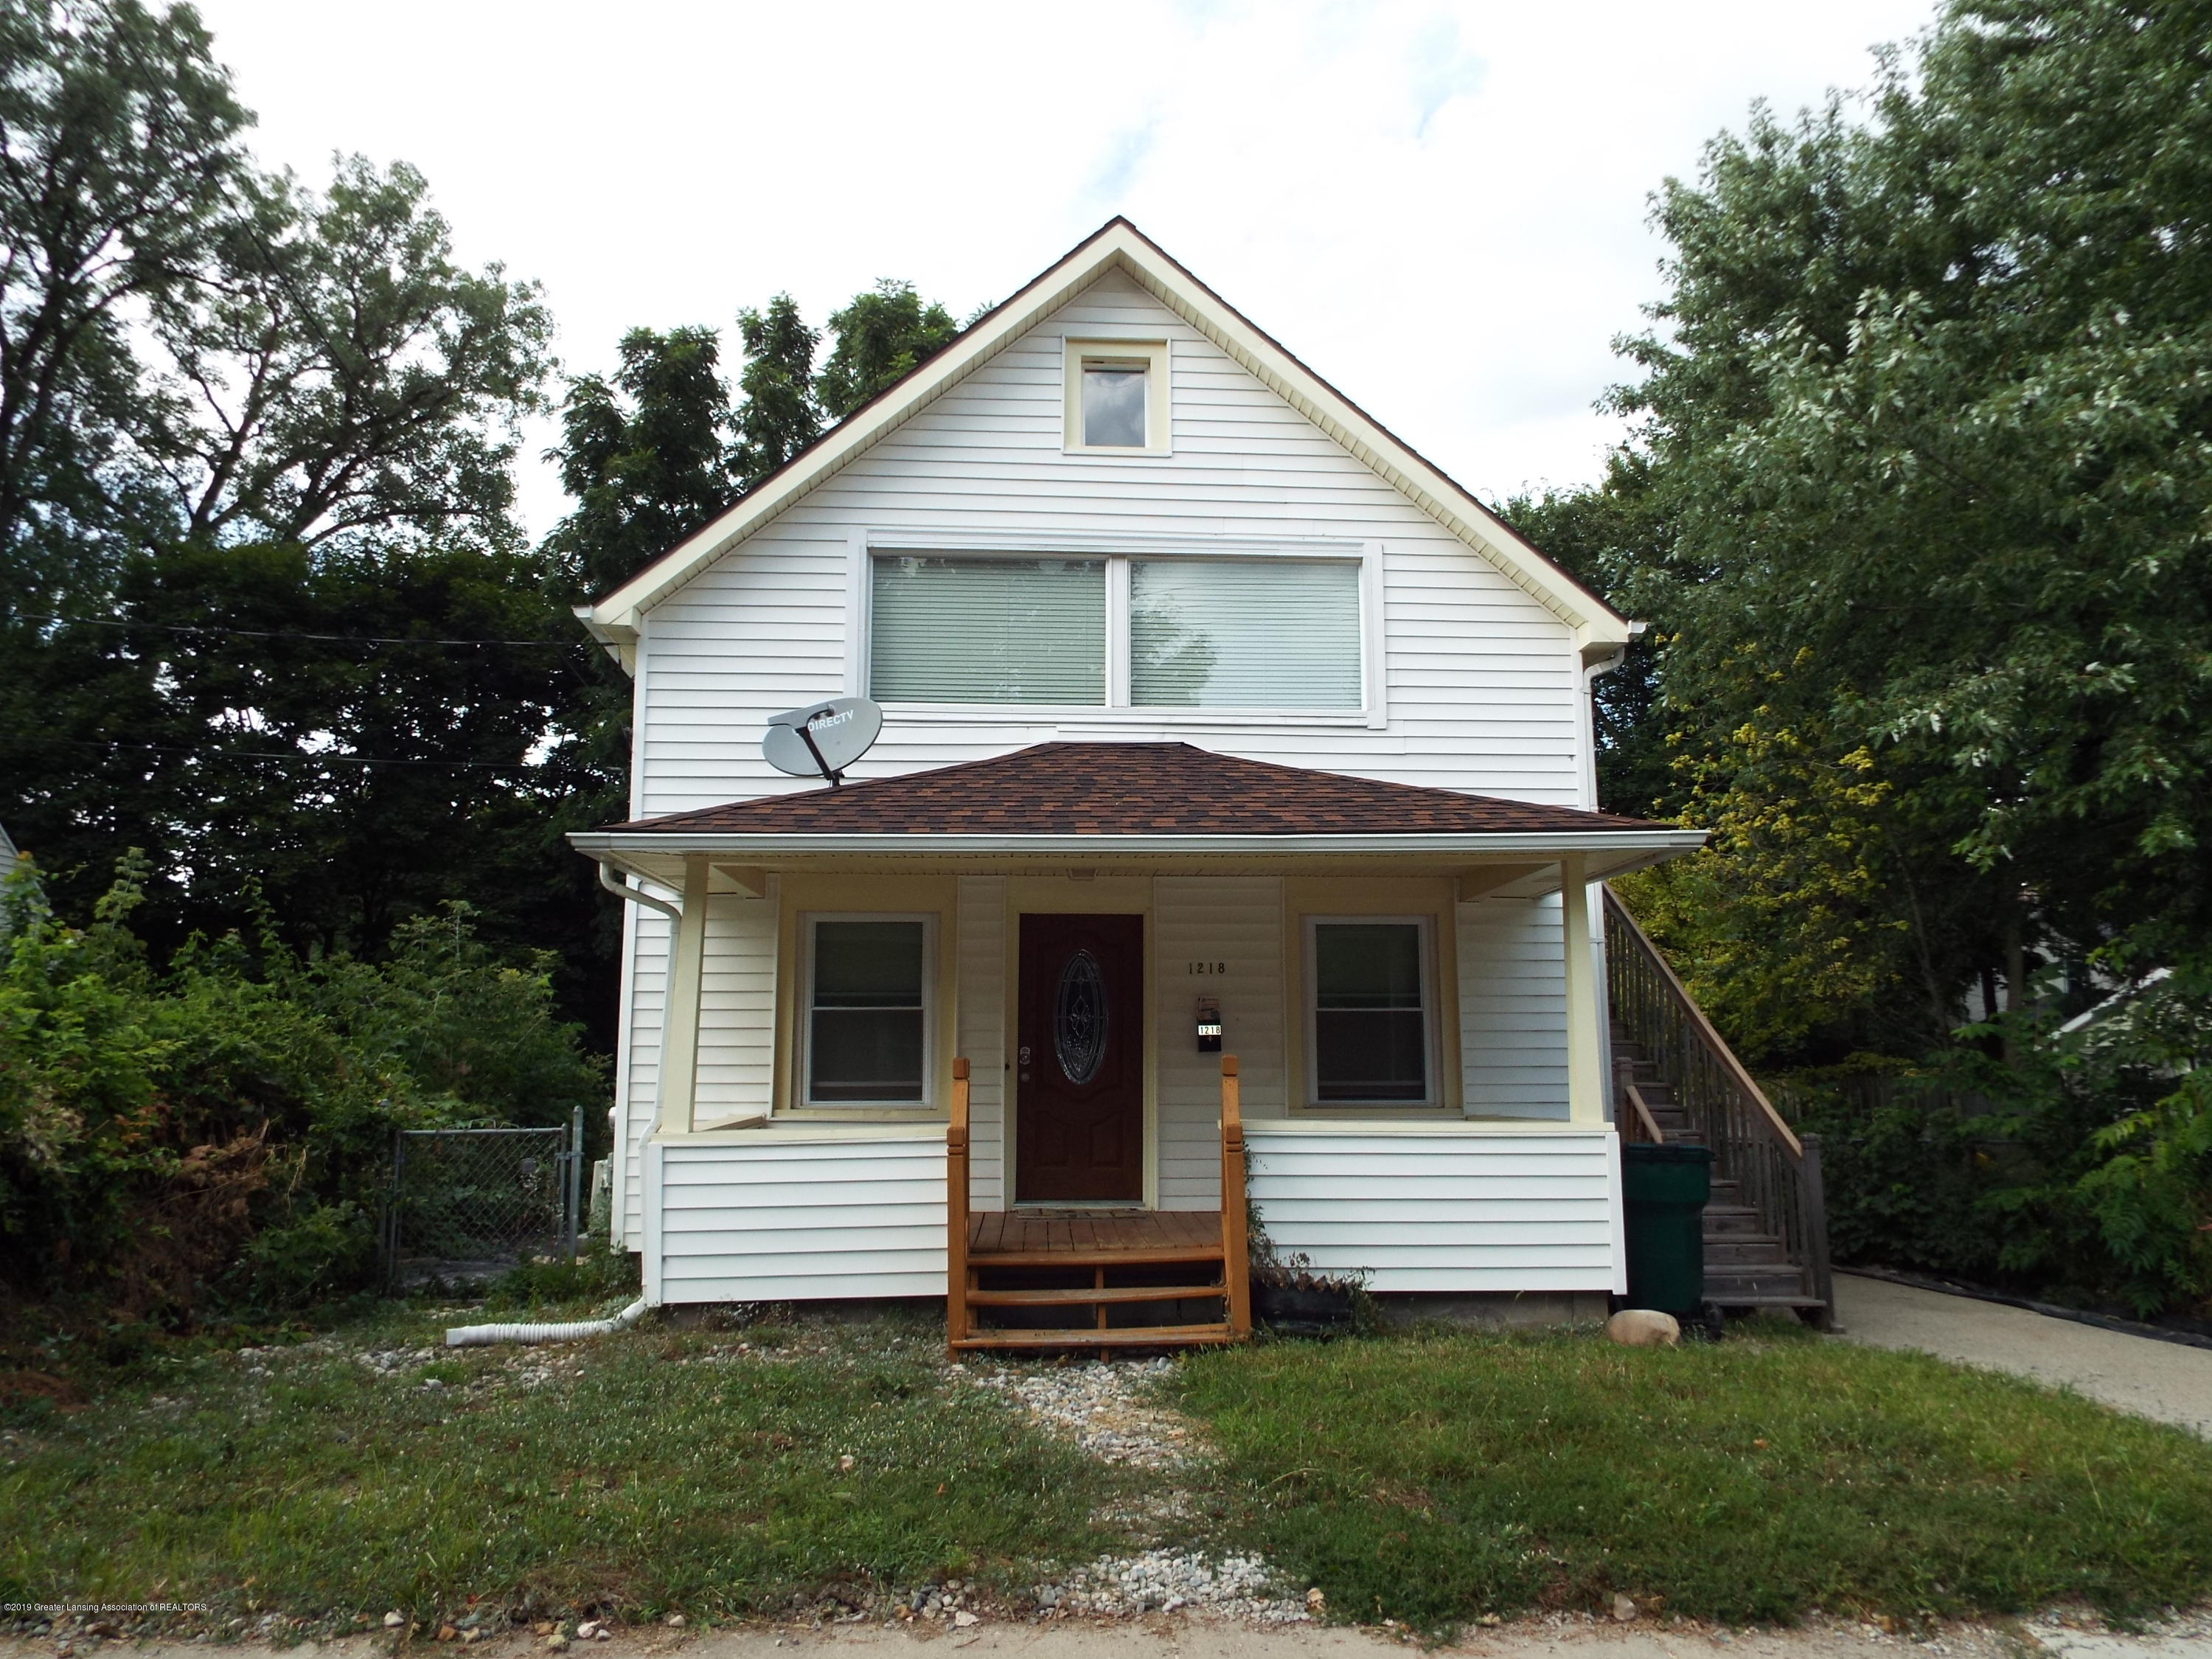 1218 Theodore St - Your Next Home! - 1